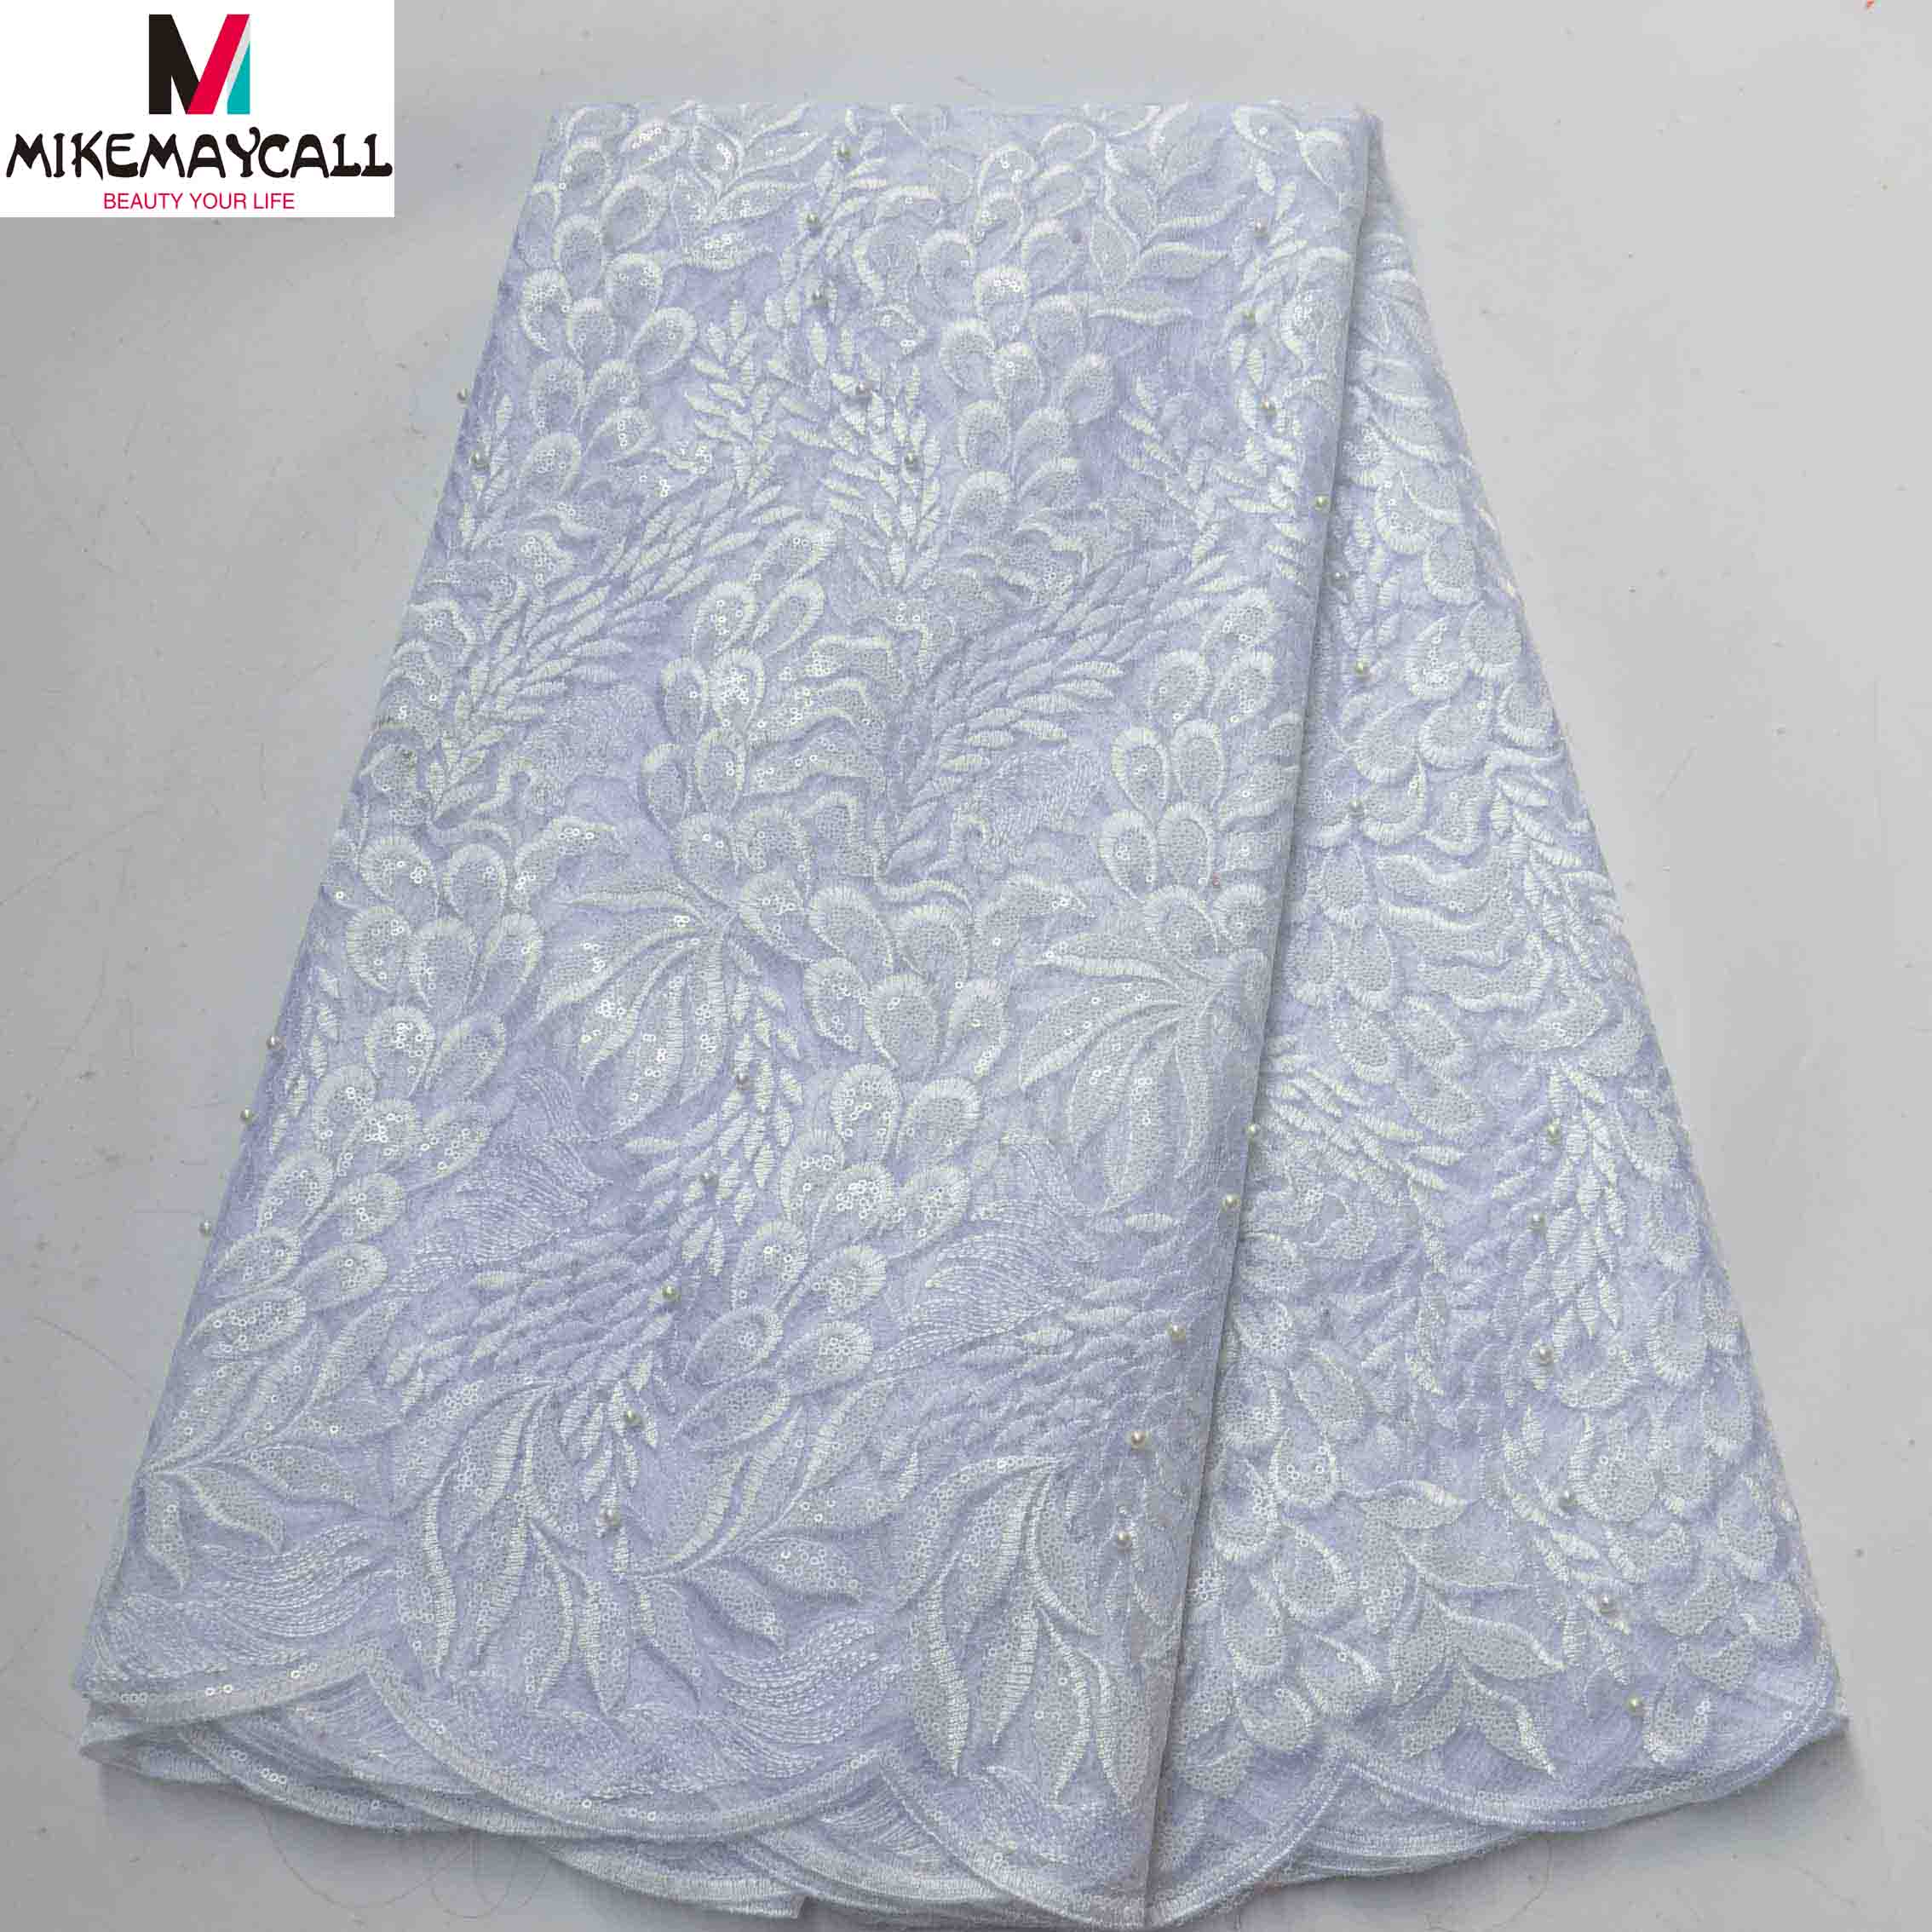 Pure white Color French Cord Lace Silk Chiffon Fabric With Shiny Sequins